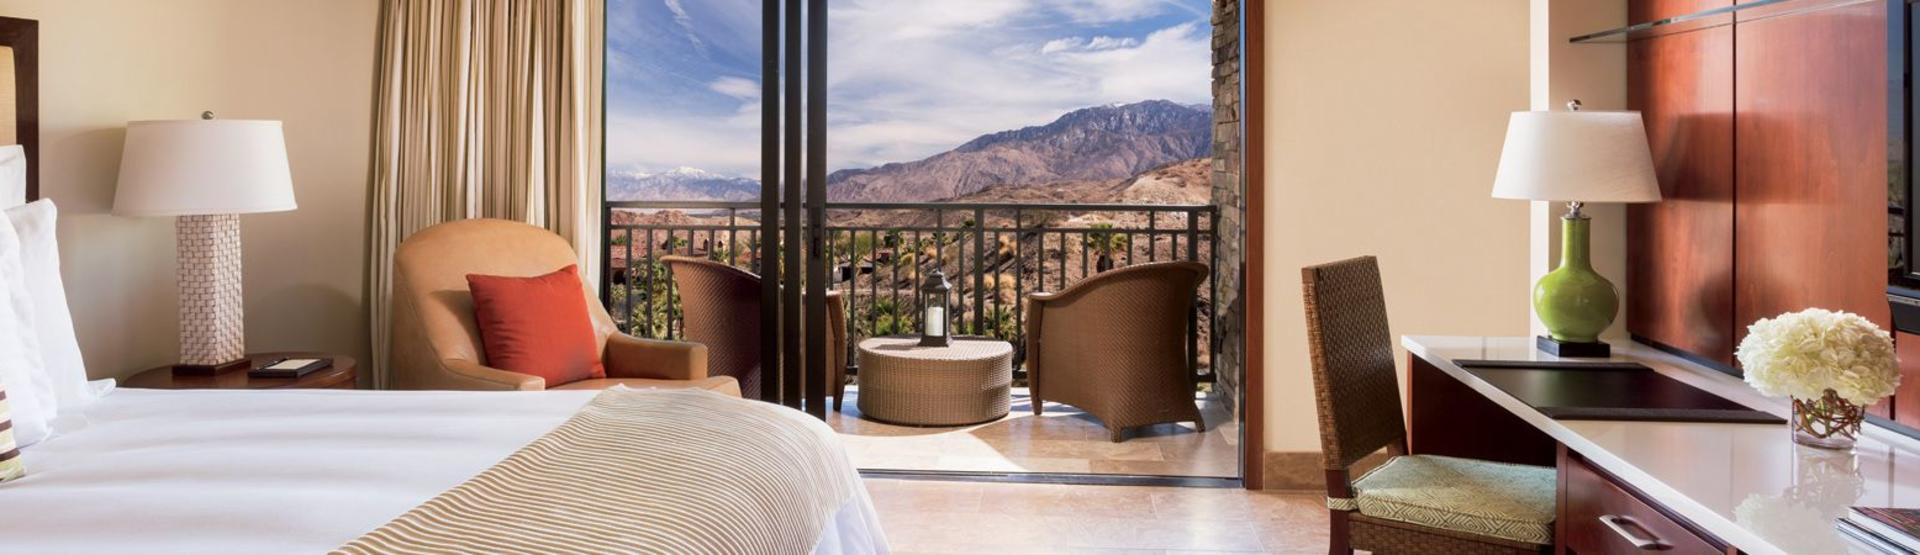 Hotel Deals in Greater Palm Springs